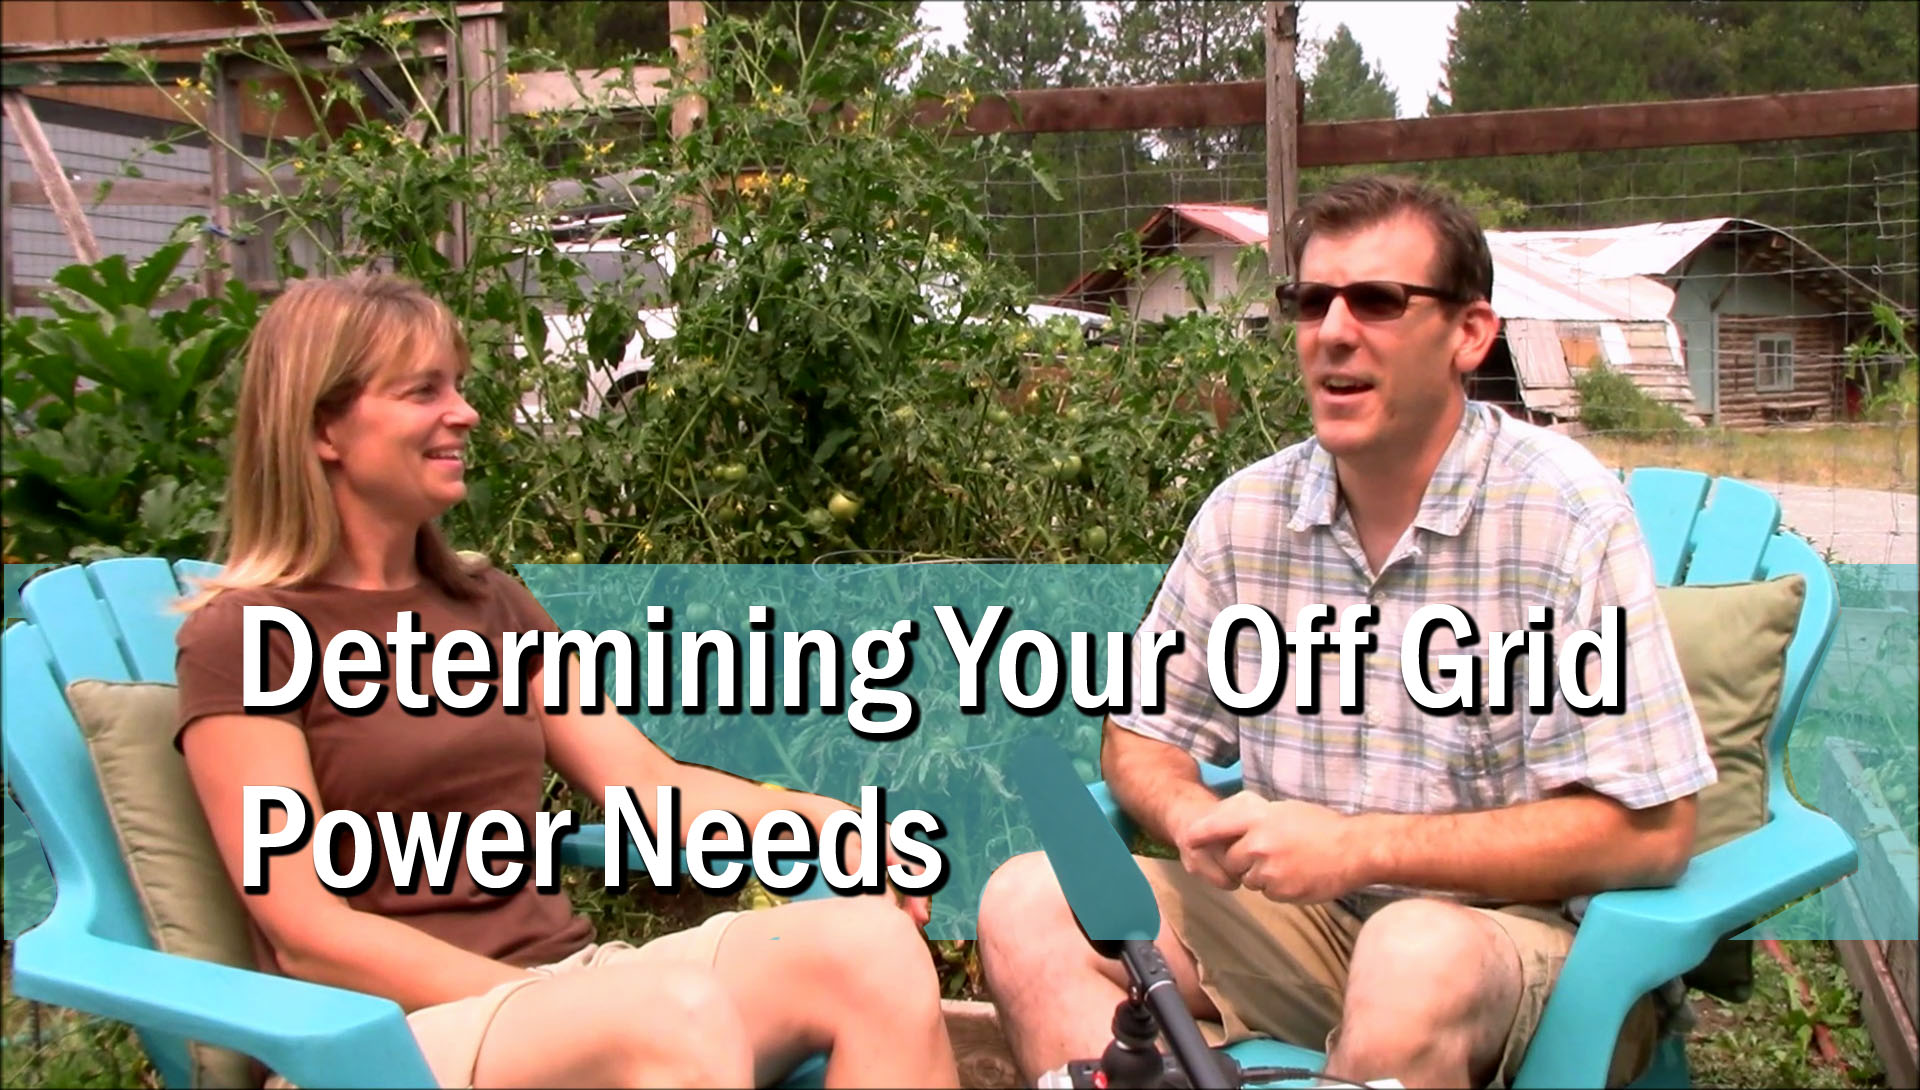 Determining Off Grid Power Needs